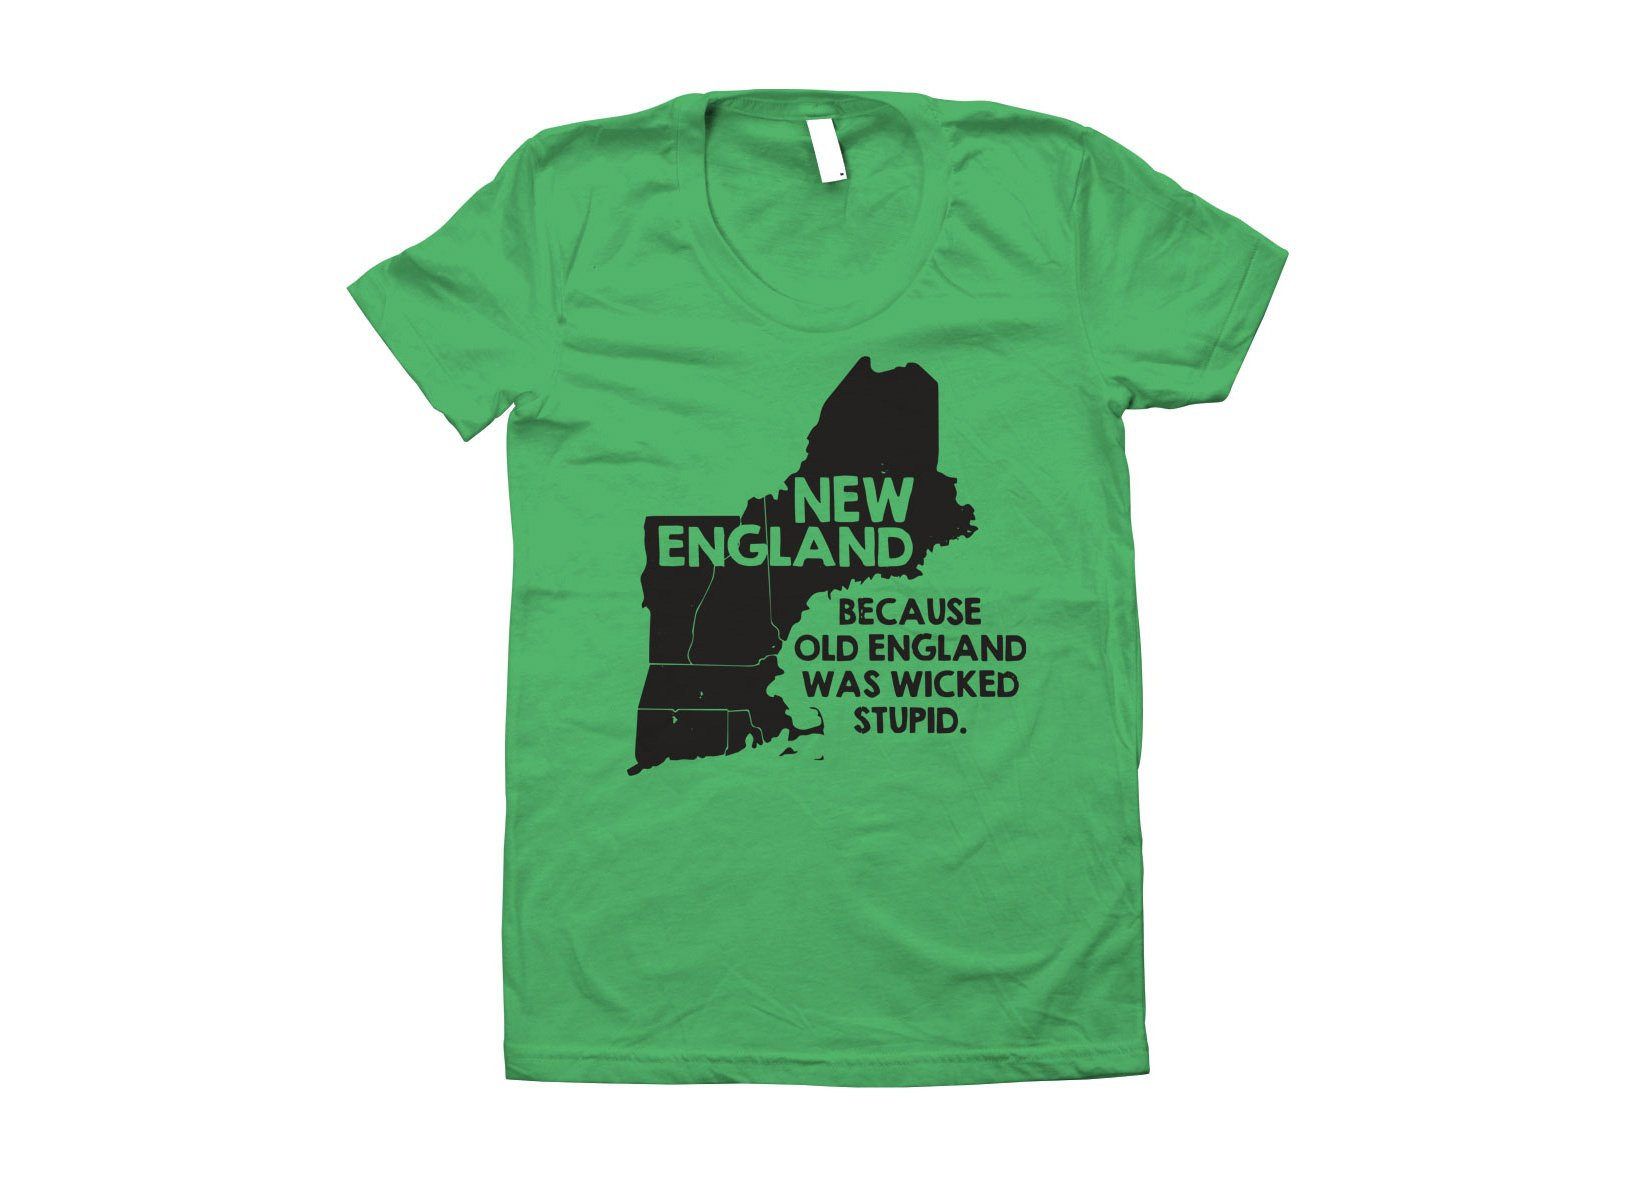 New England, Because Old England Was Wicked Stupid on Juniors T-Shirt